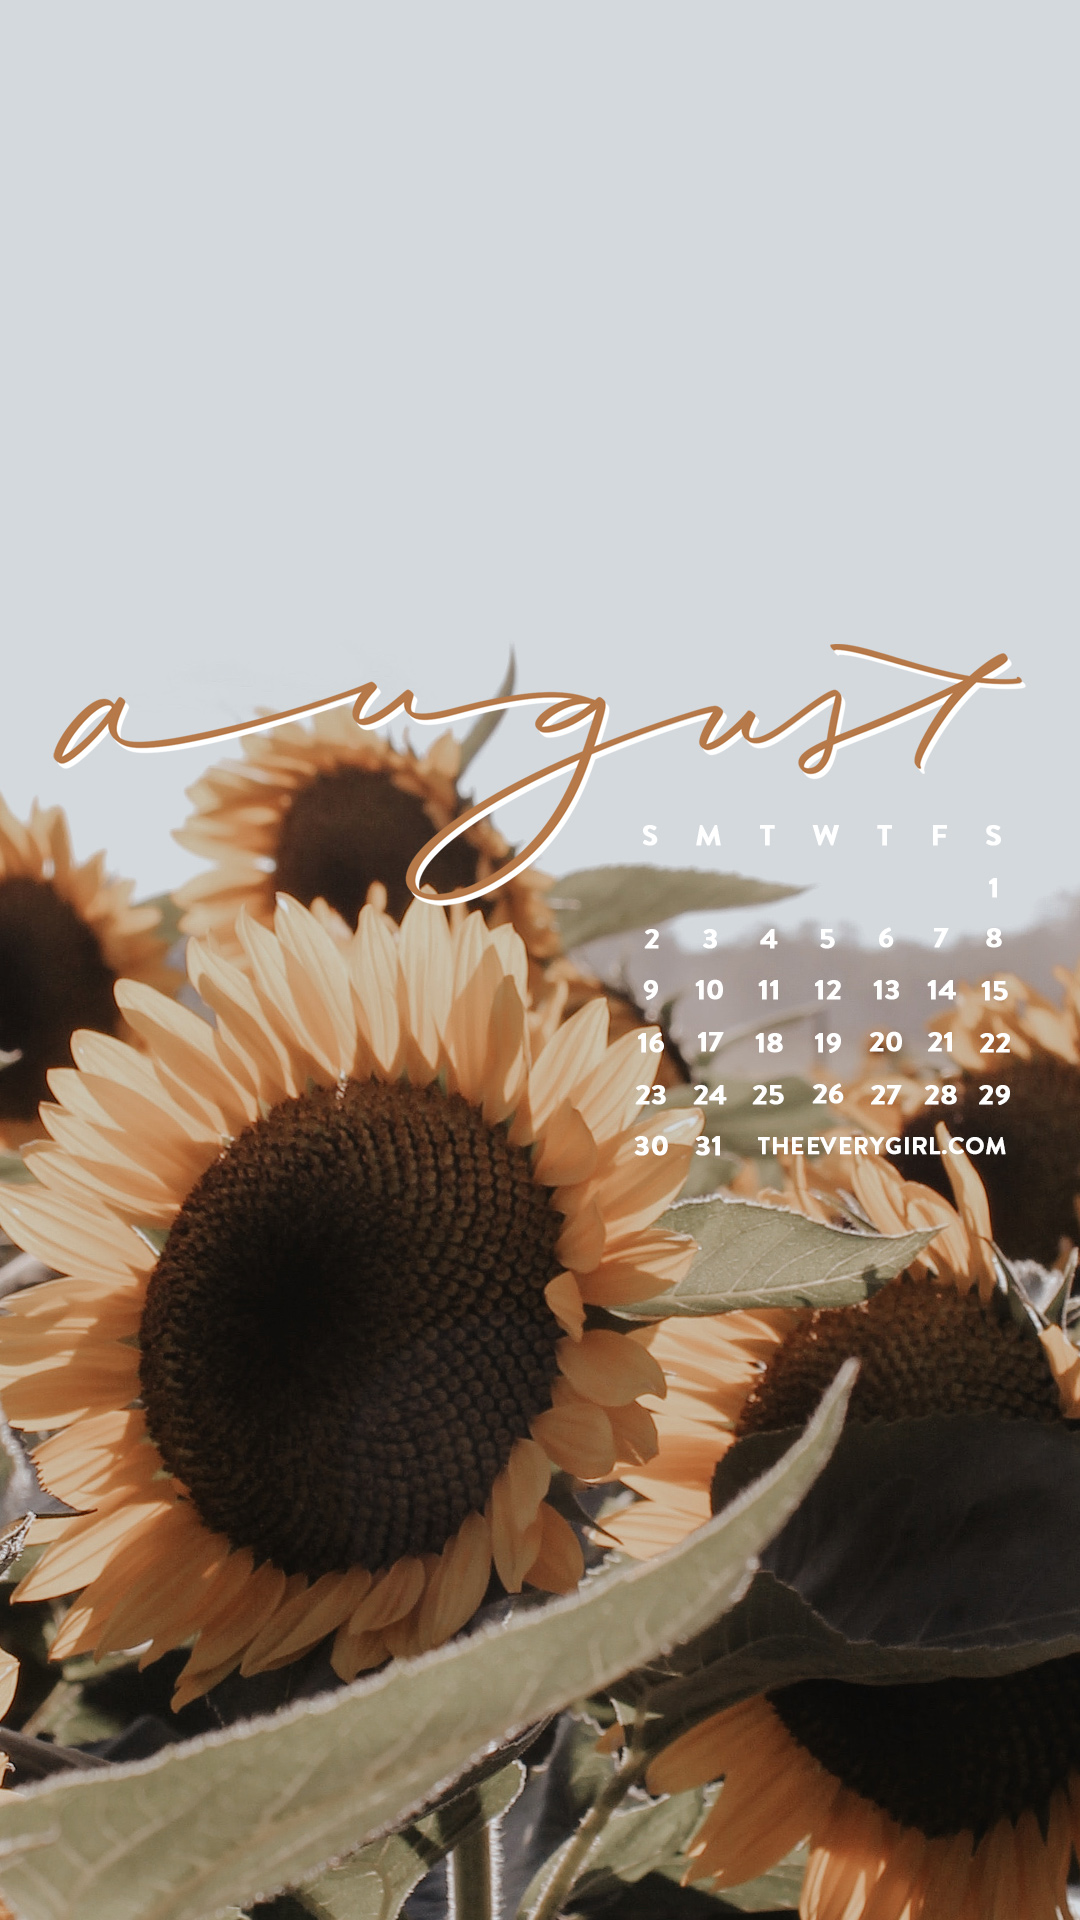 Free Downloadable Tech Backgrounds For August 2020 The Everygirl